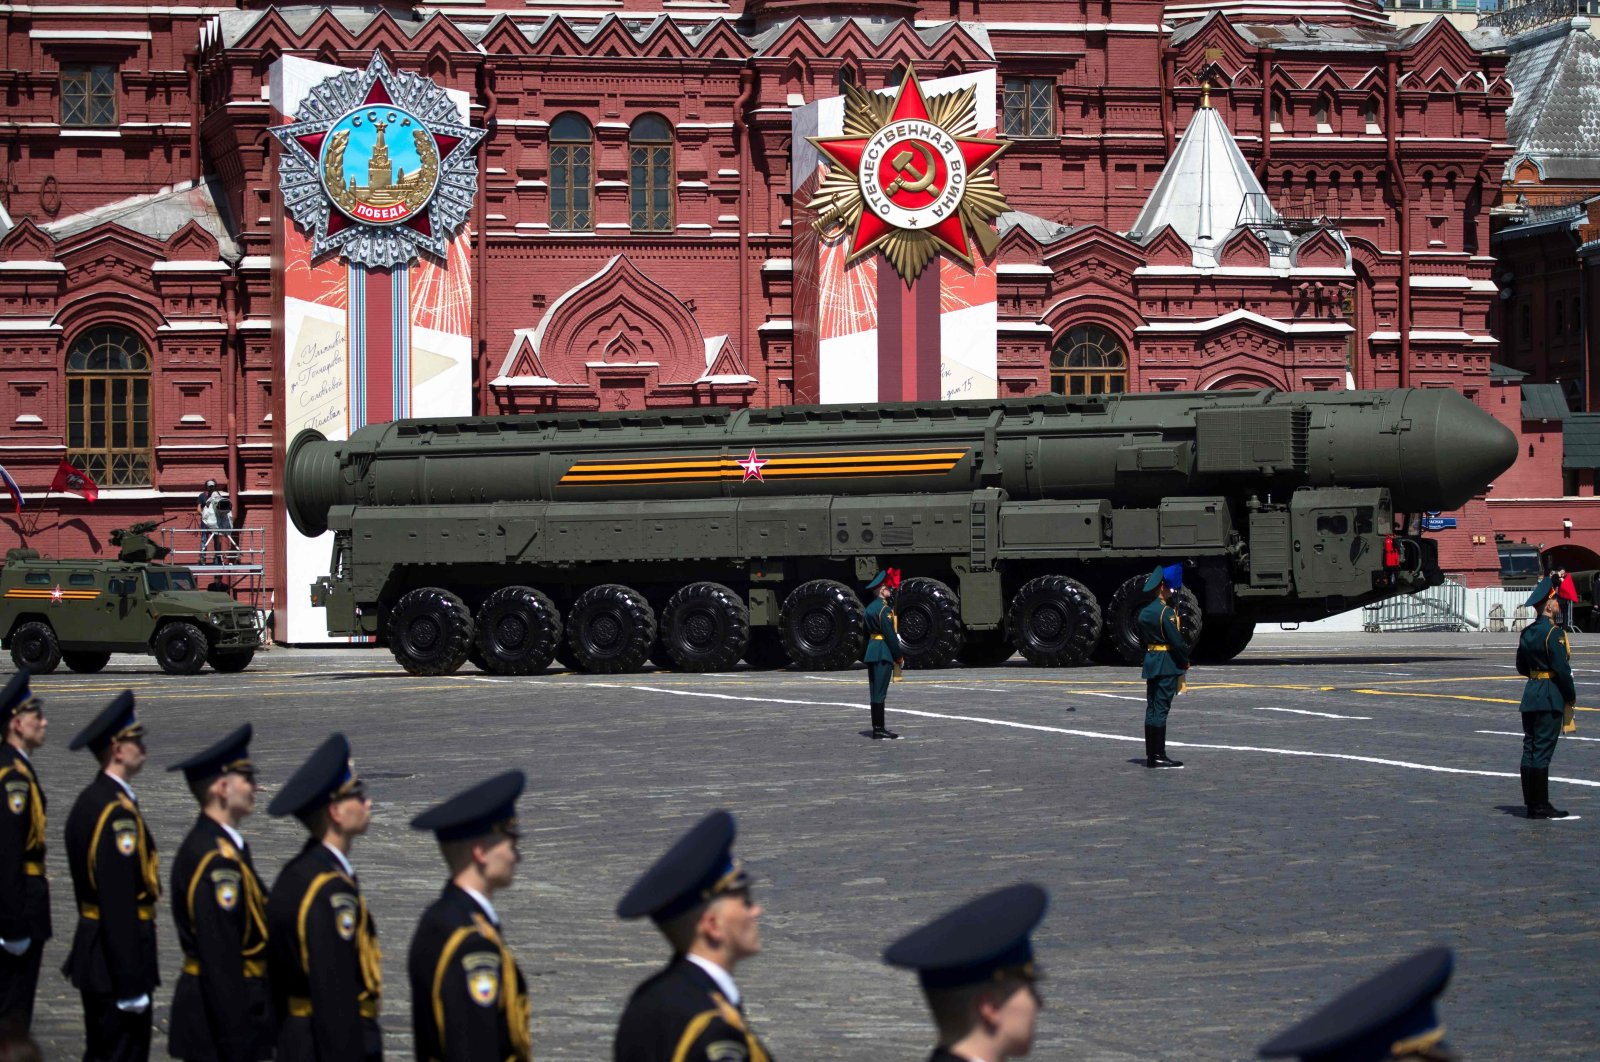 A Russian army RS-24 Yars ballistic missile system moves through Red Square during a military parade that marked the 75th anniversary of the Soviet victory over Nazi Germany in World War II, in Moscow, Russia, June 24, 2020. (AFP Photo)